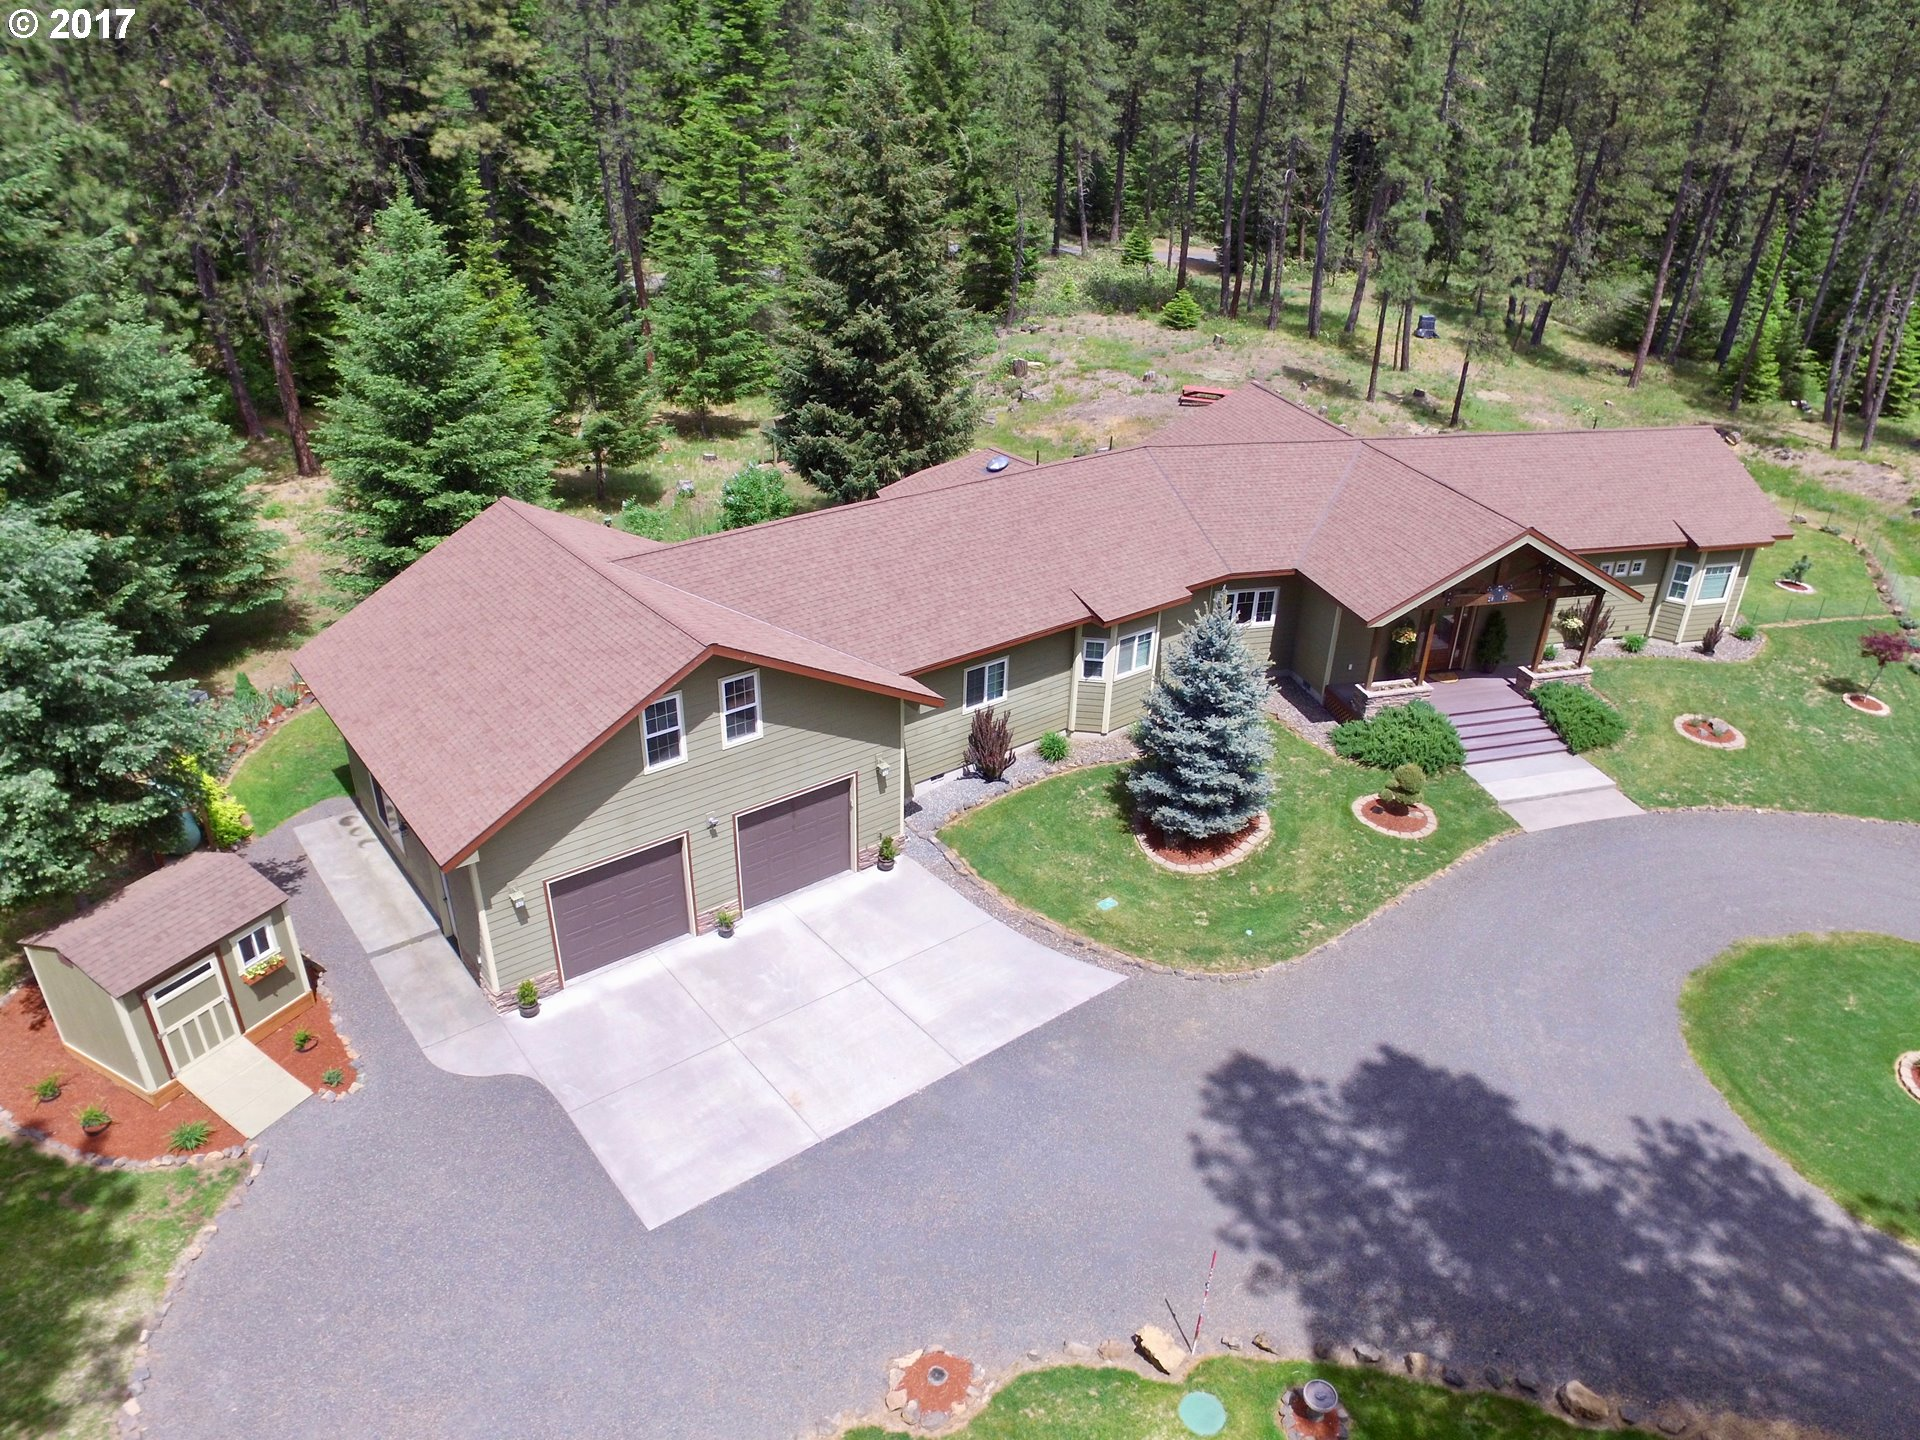 21 WESTSIDE RD, Trout Lake, WA 98650